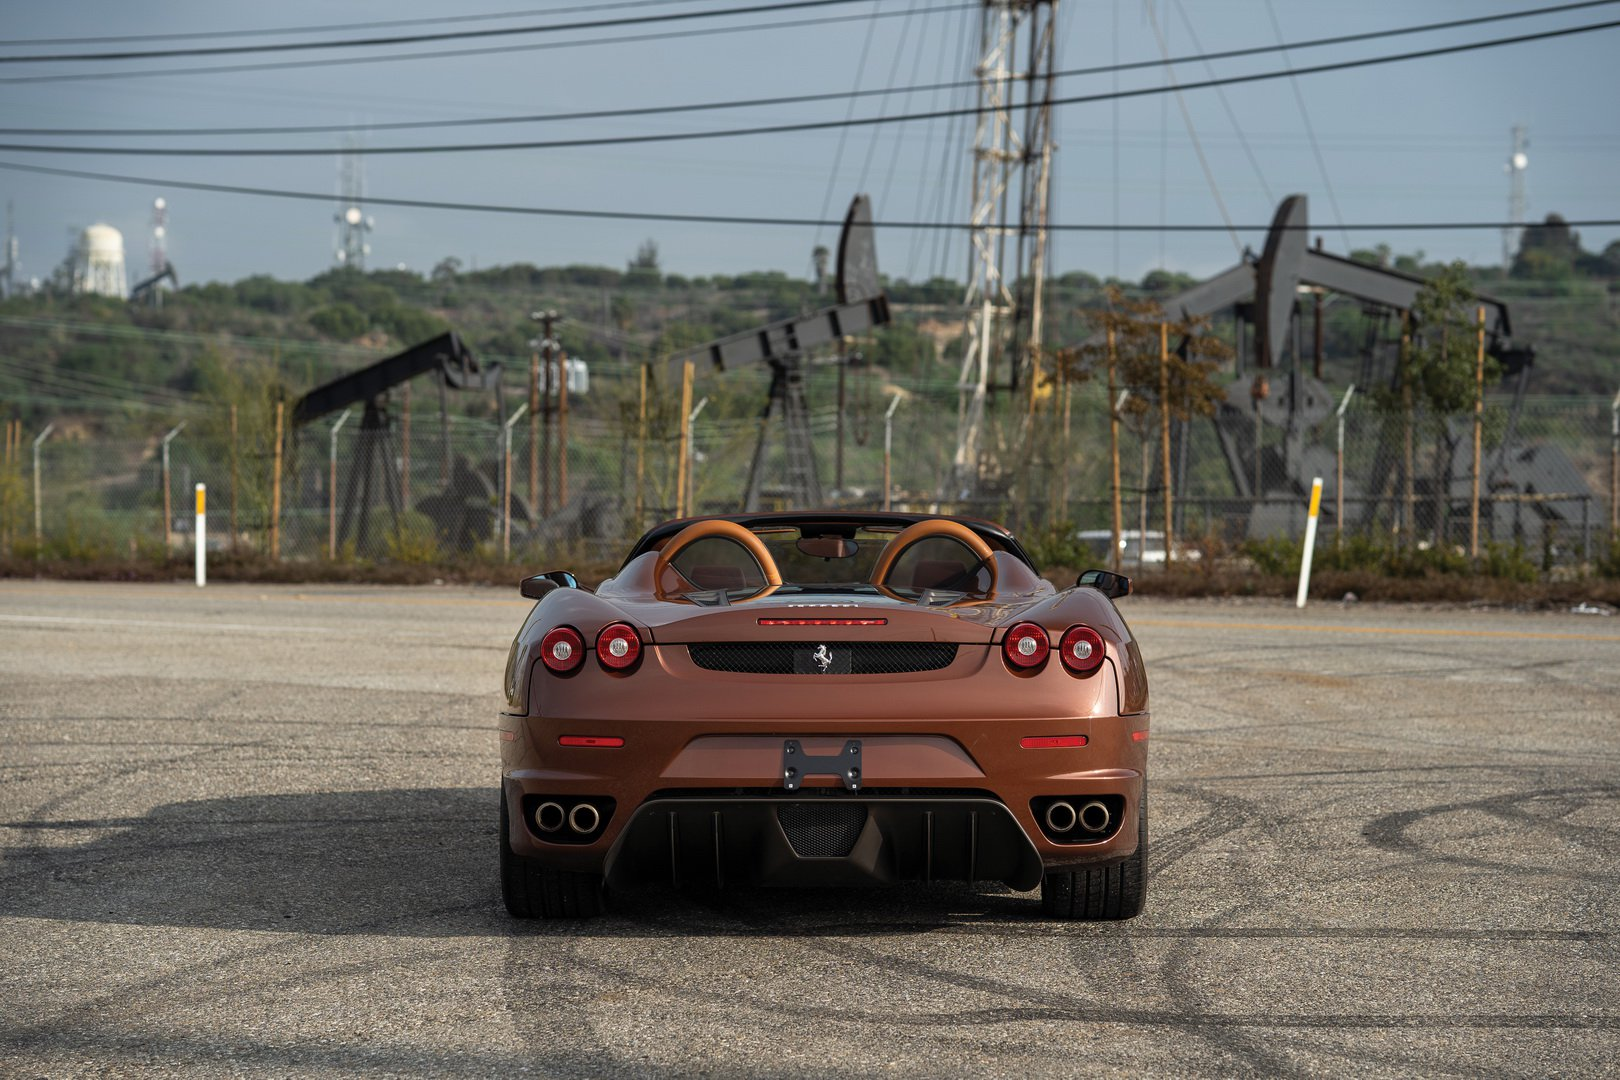 Ferrari F430 Spider in brown Classic Marrone color (5)